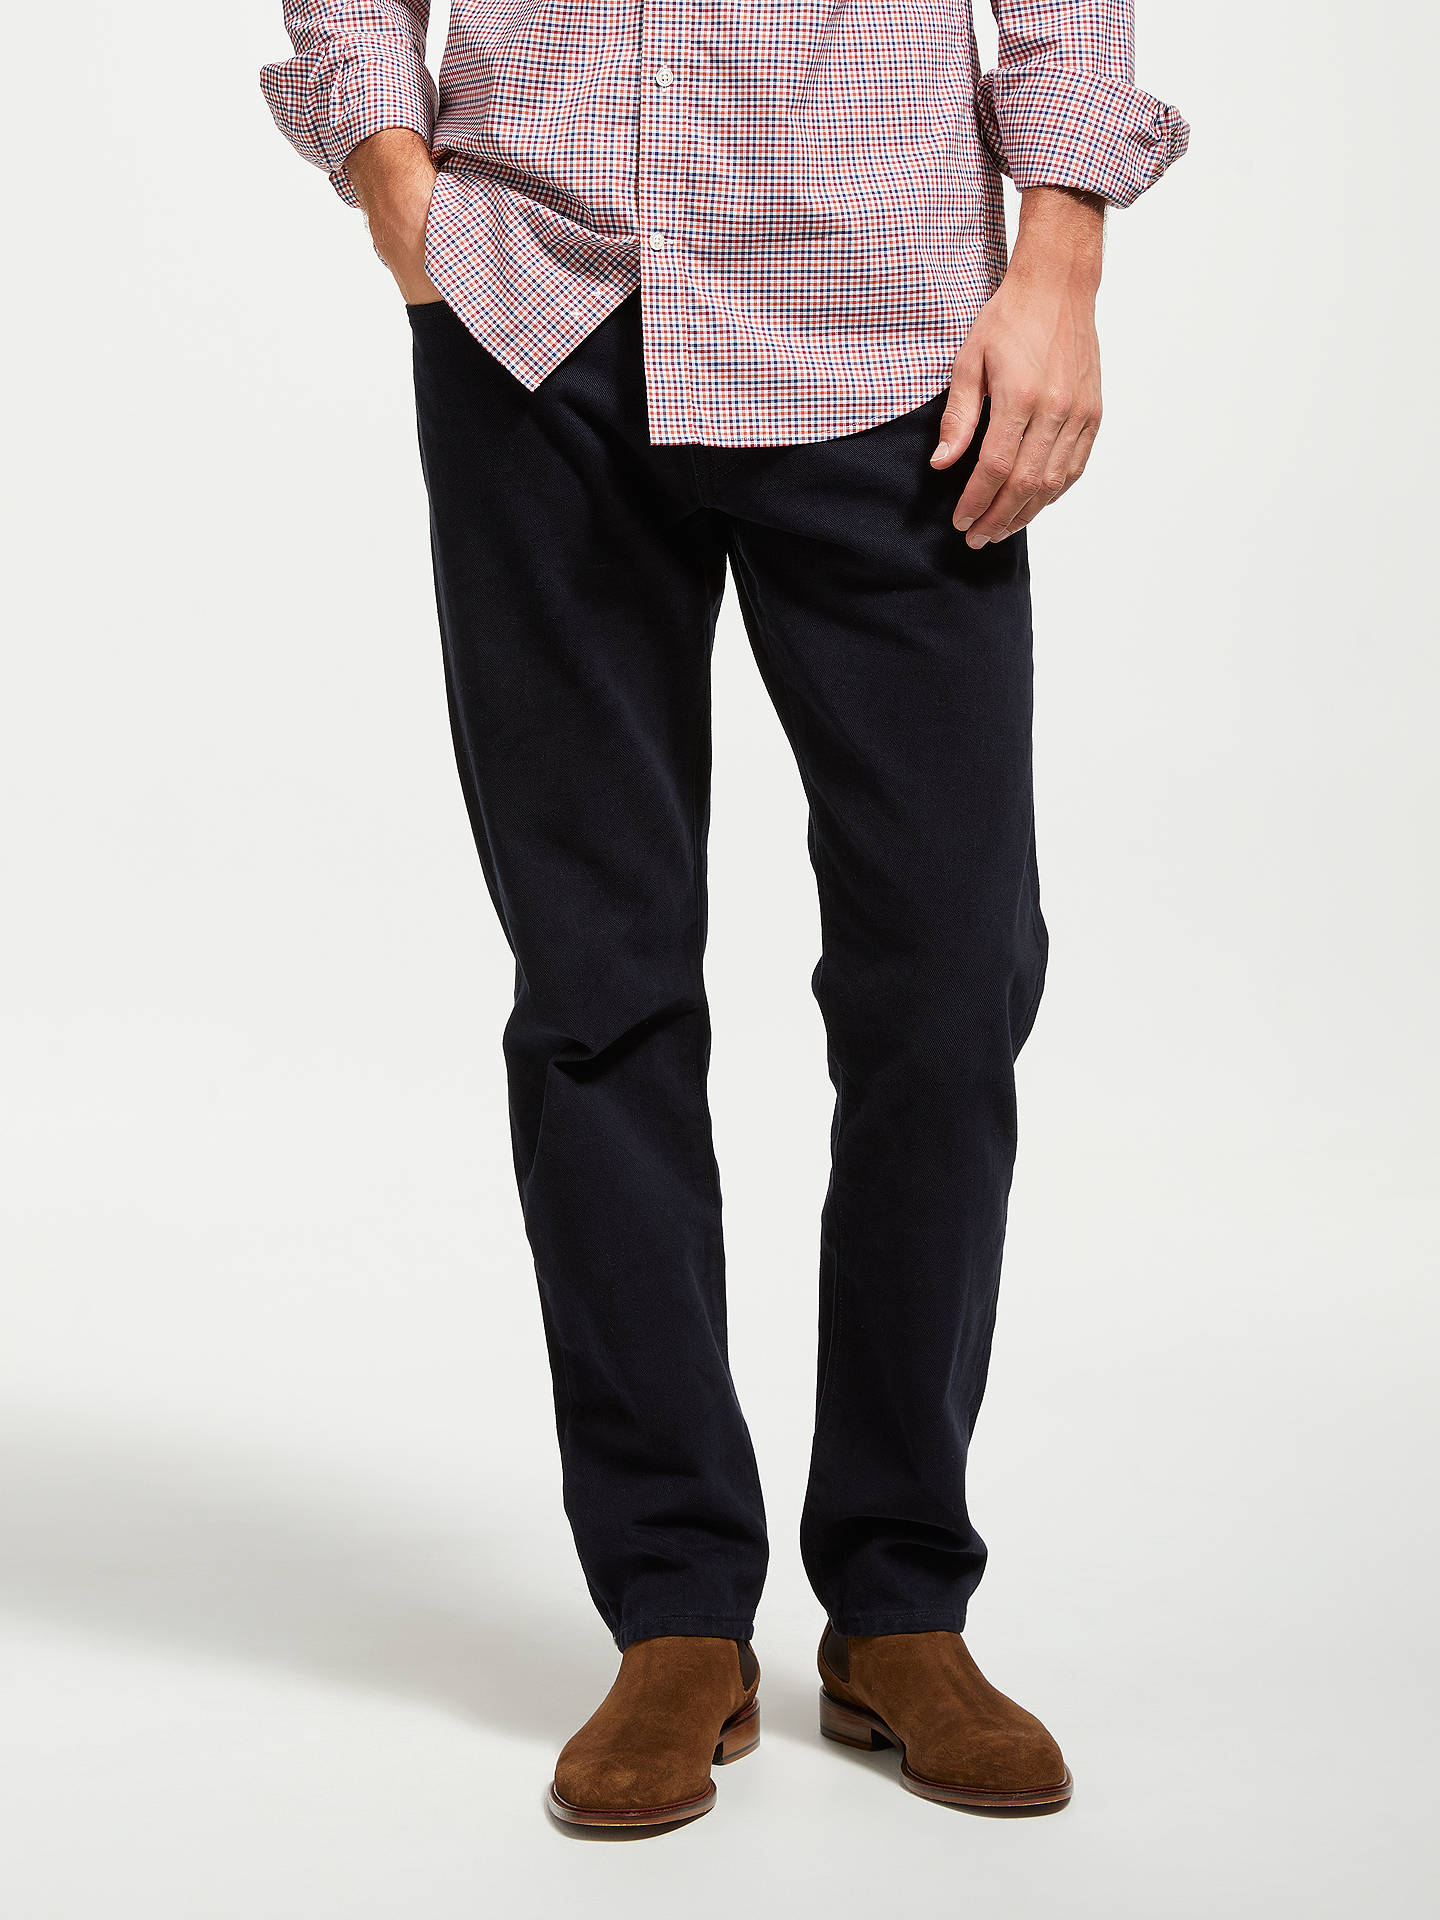 bfe7fb90cc Buy Gant Soft Twill Regular Straight Jeans, Navy, 34S Online at  johnlewis.com ...